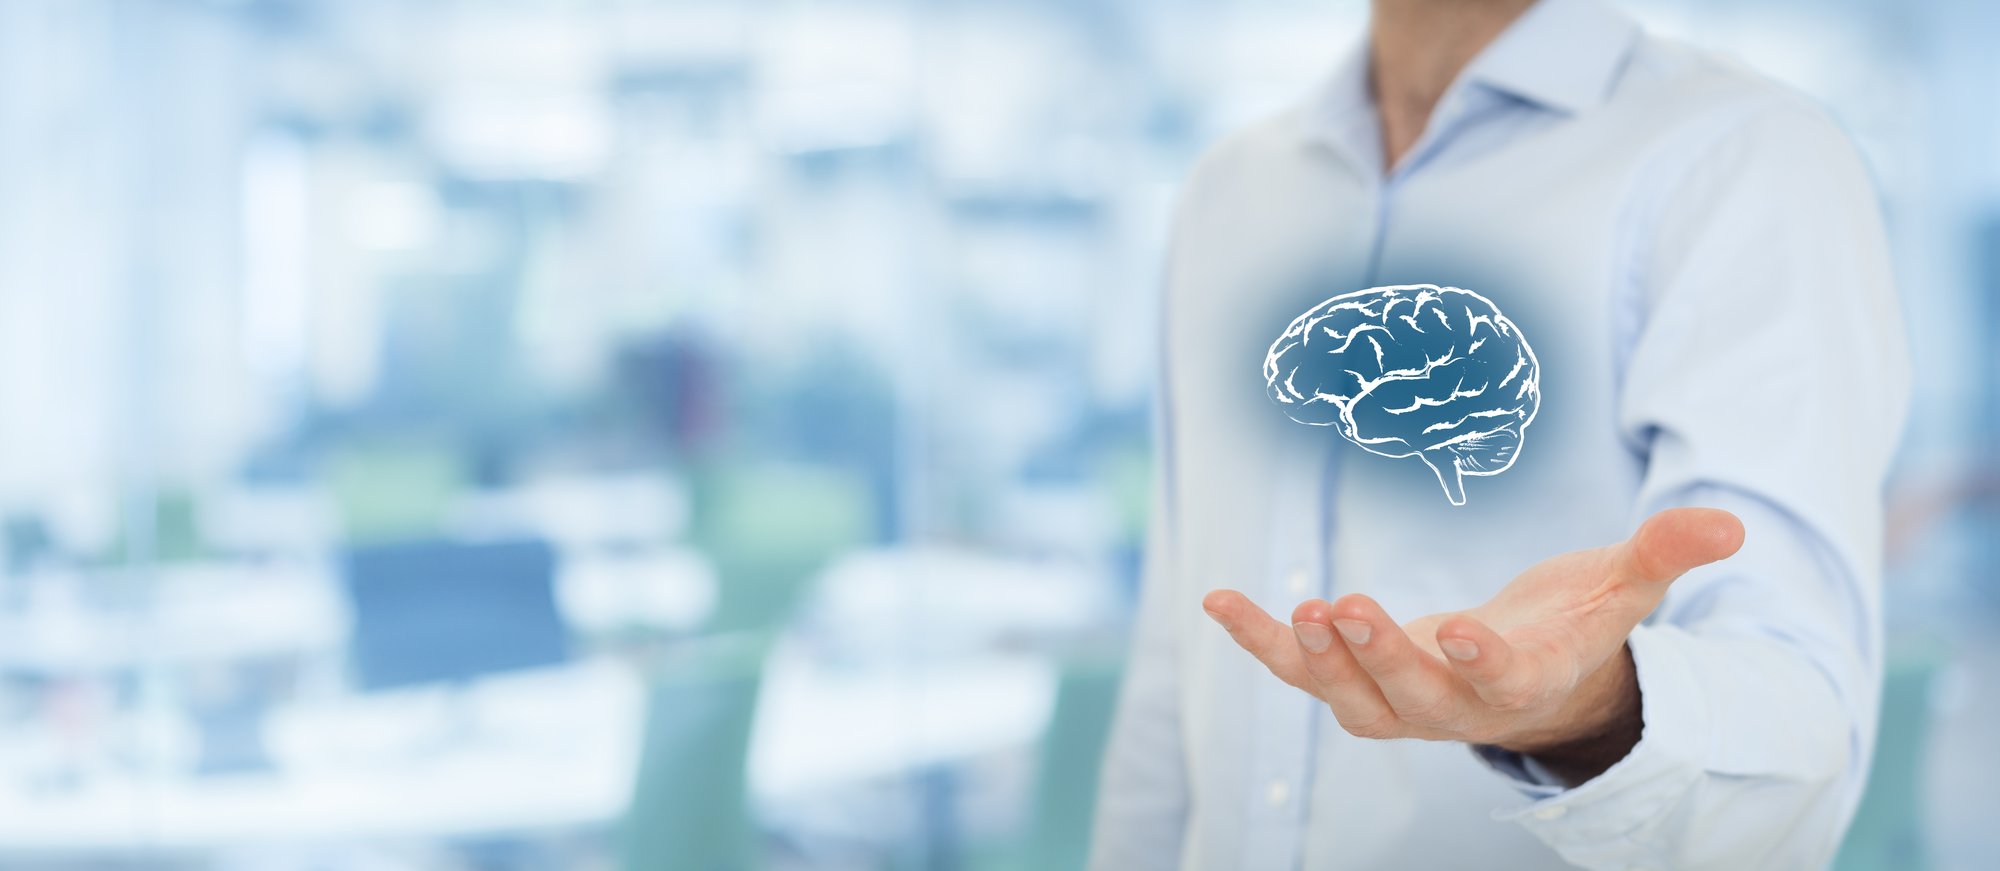 Man holding brain image in front of conference room